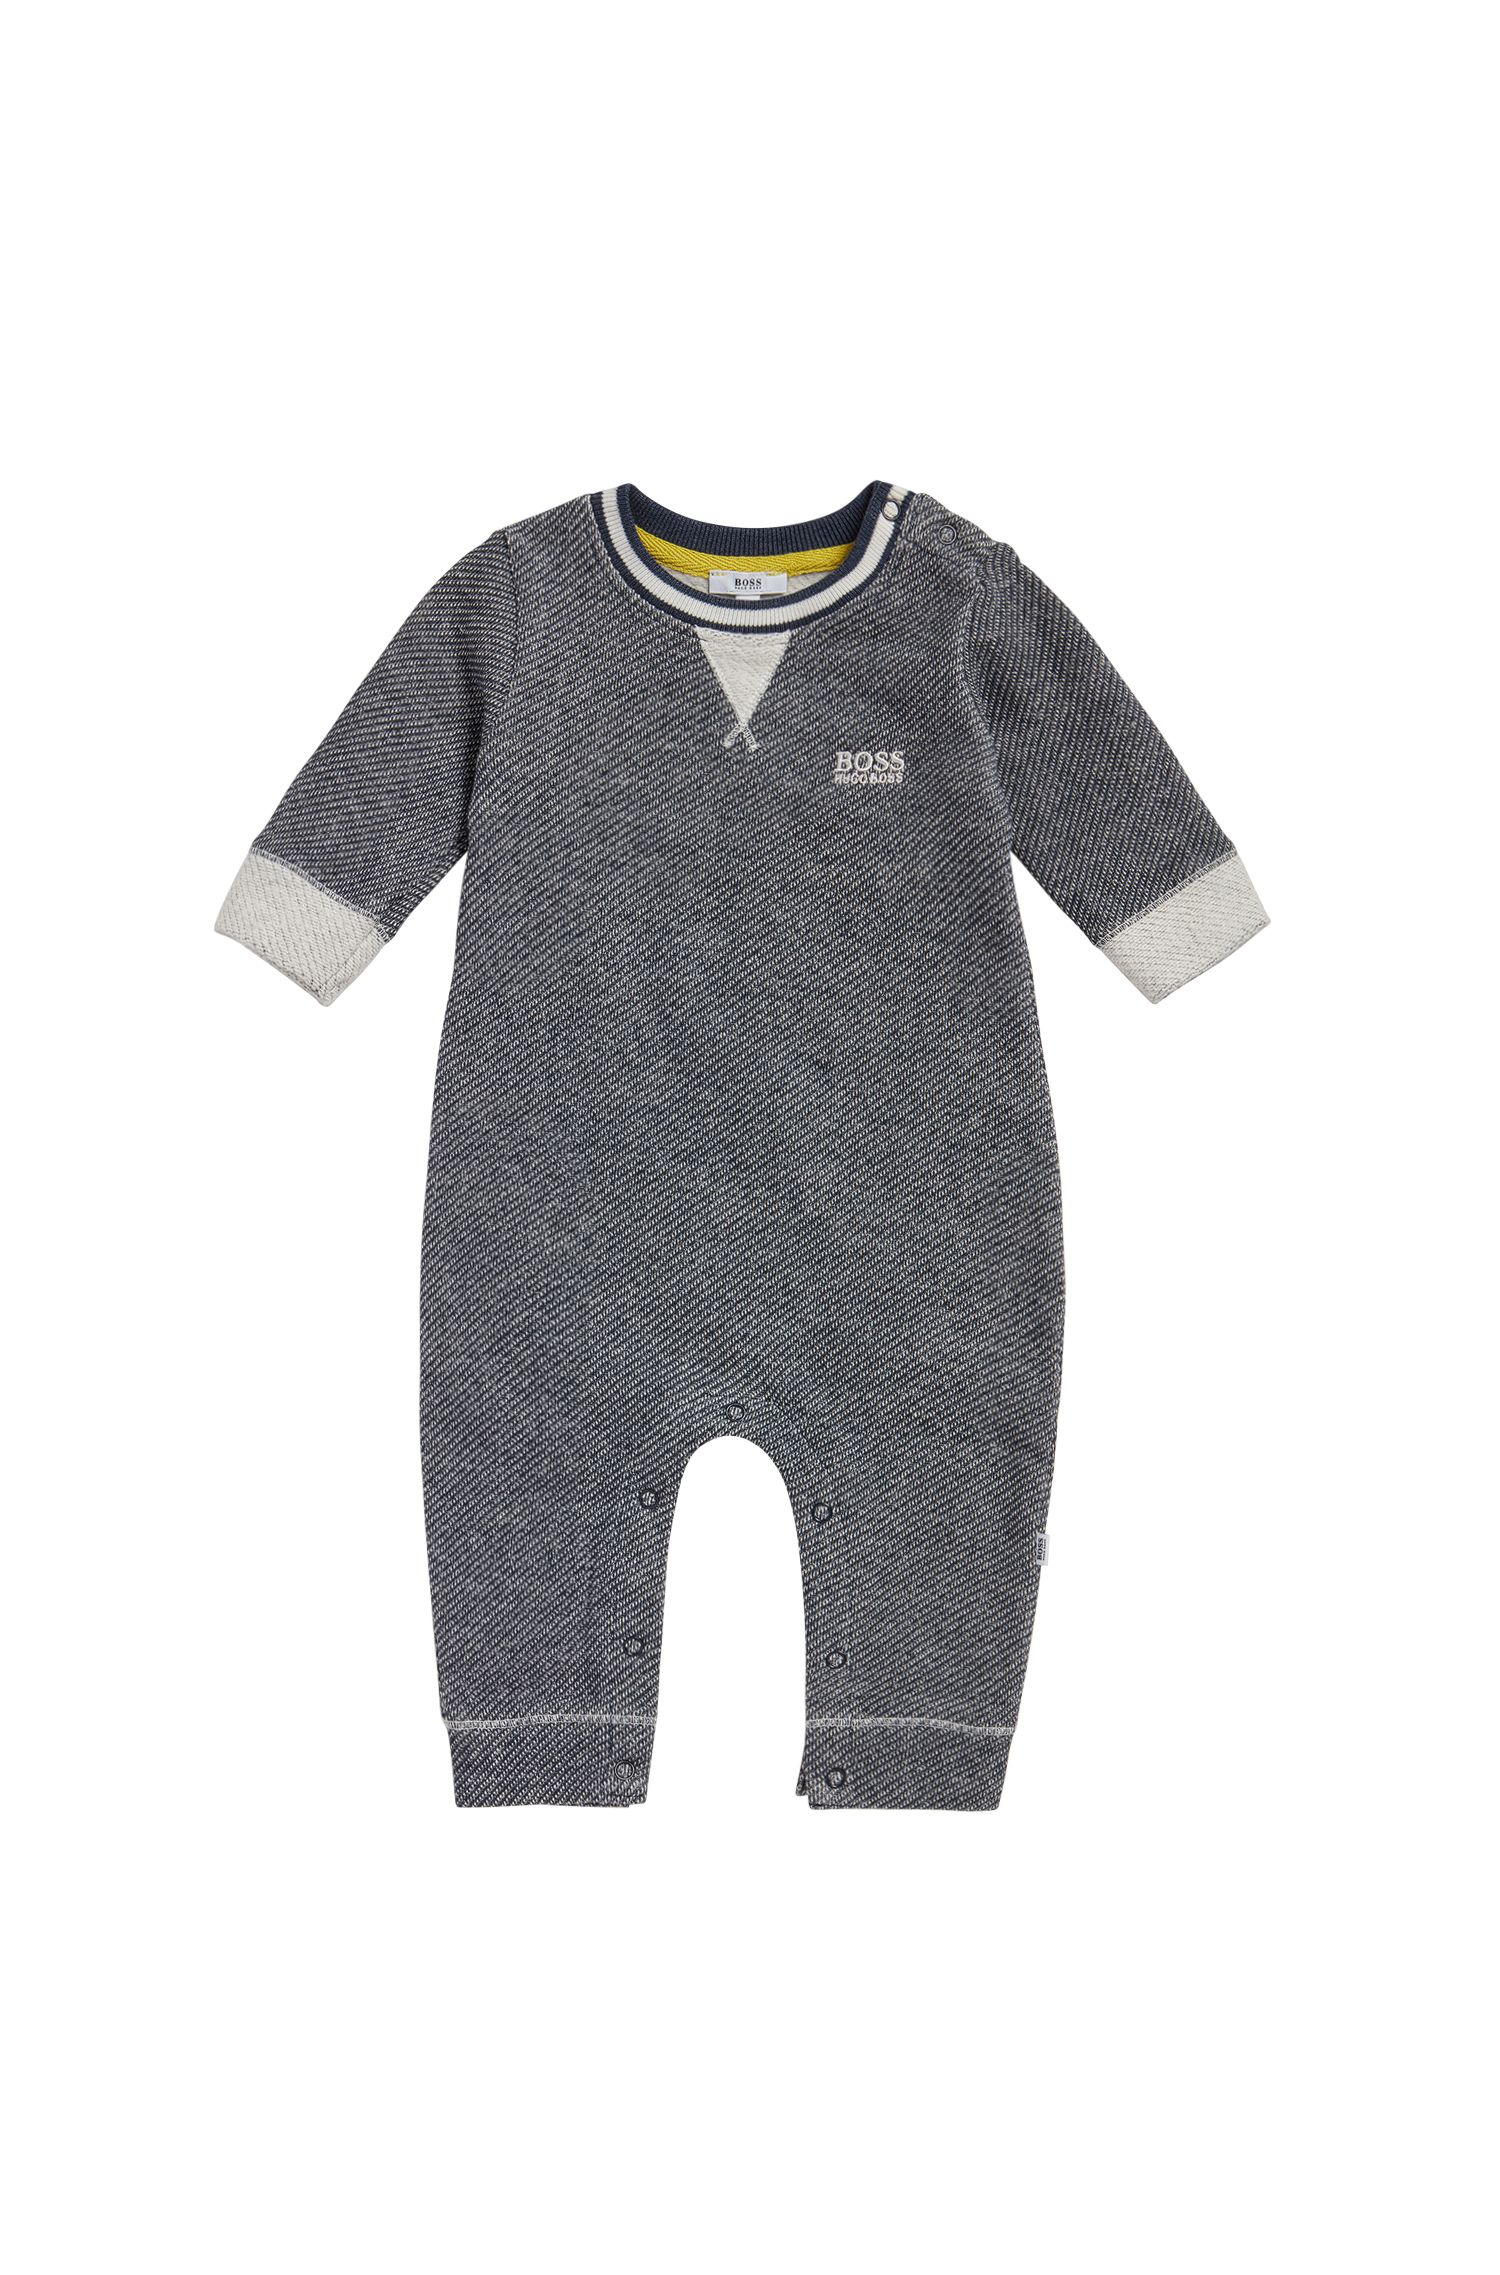 Newborns' bodysuit in cotton weave: 'J94170'